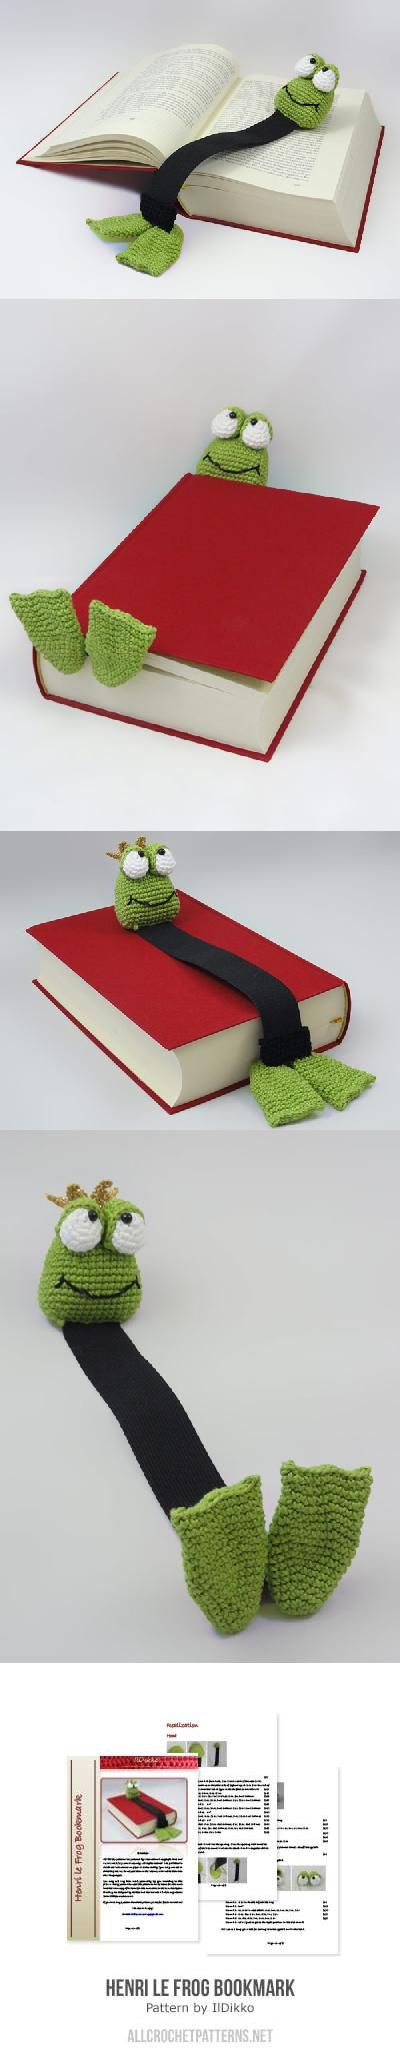 Henri Le Frog Bookmark Crochet Pattern